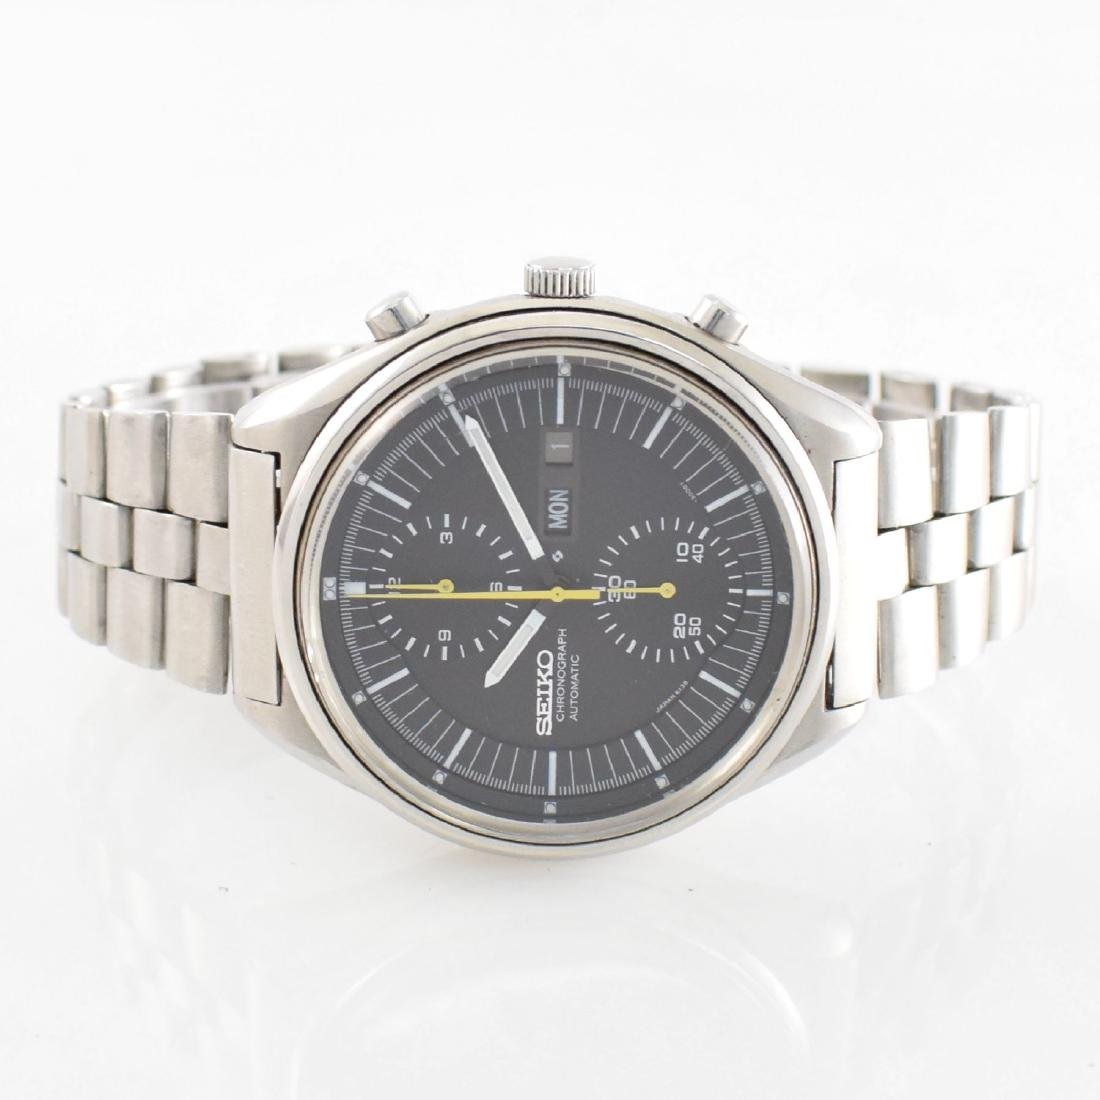 SEIKO gents wristwatch with chronograph in steel